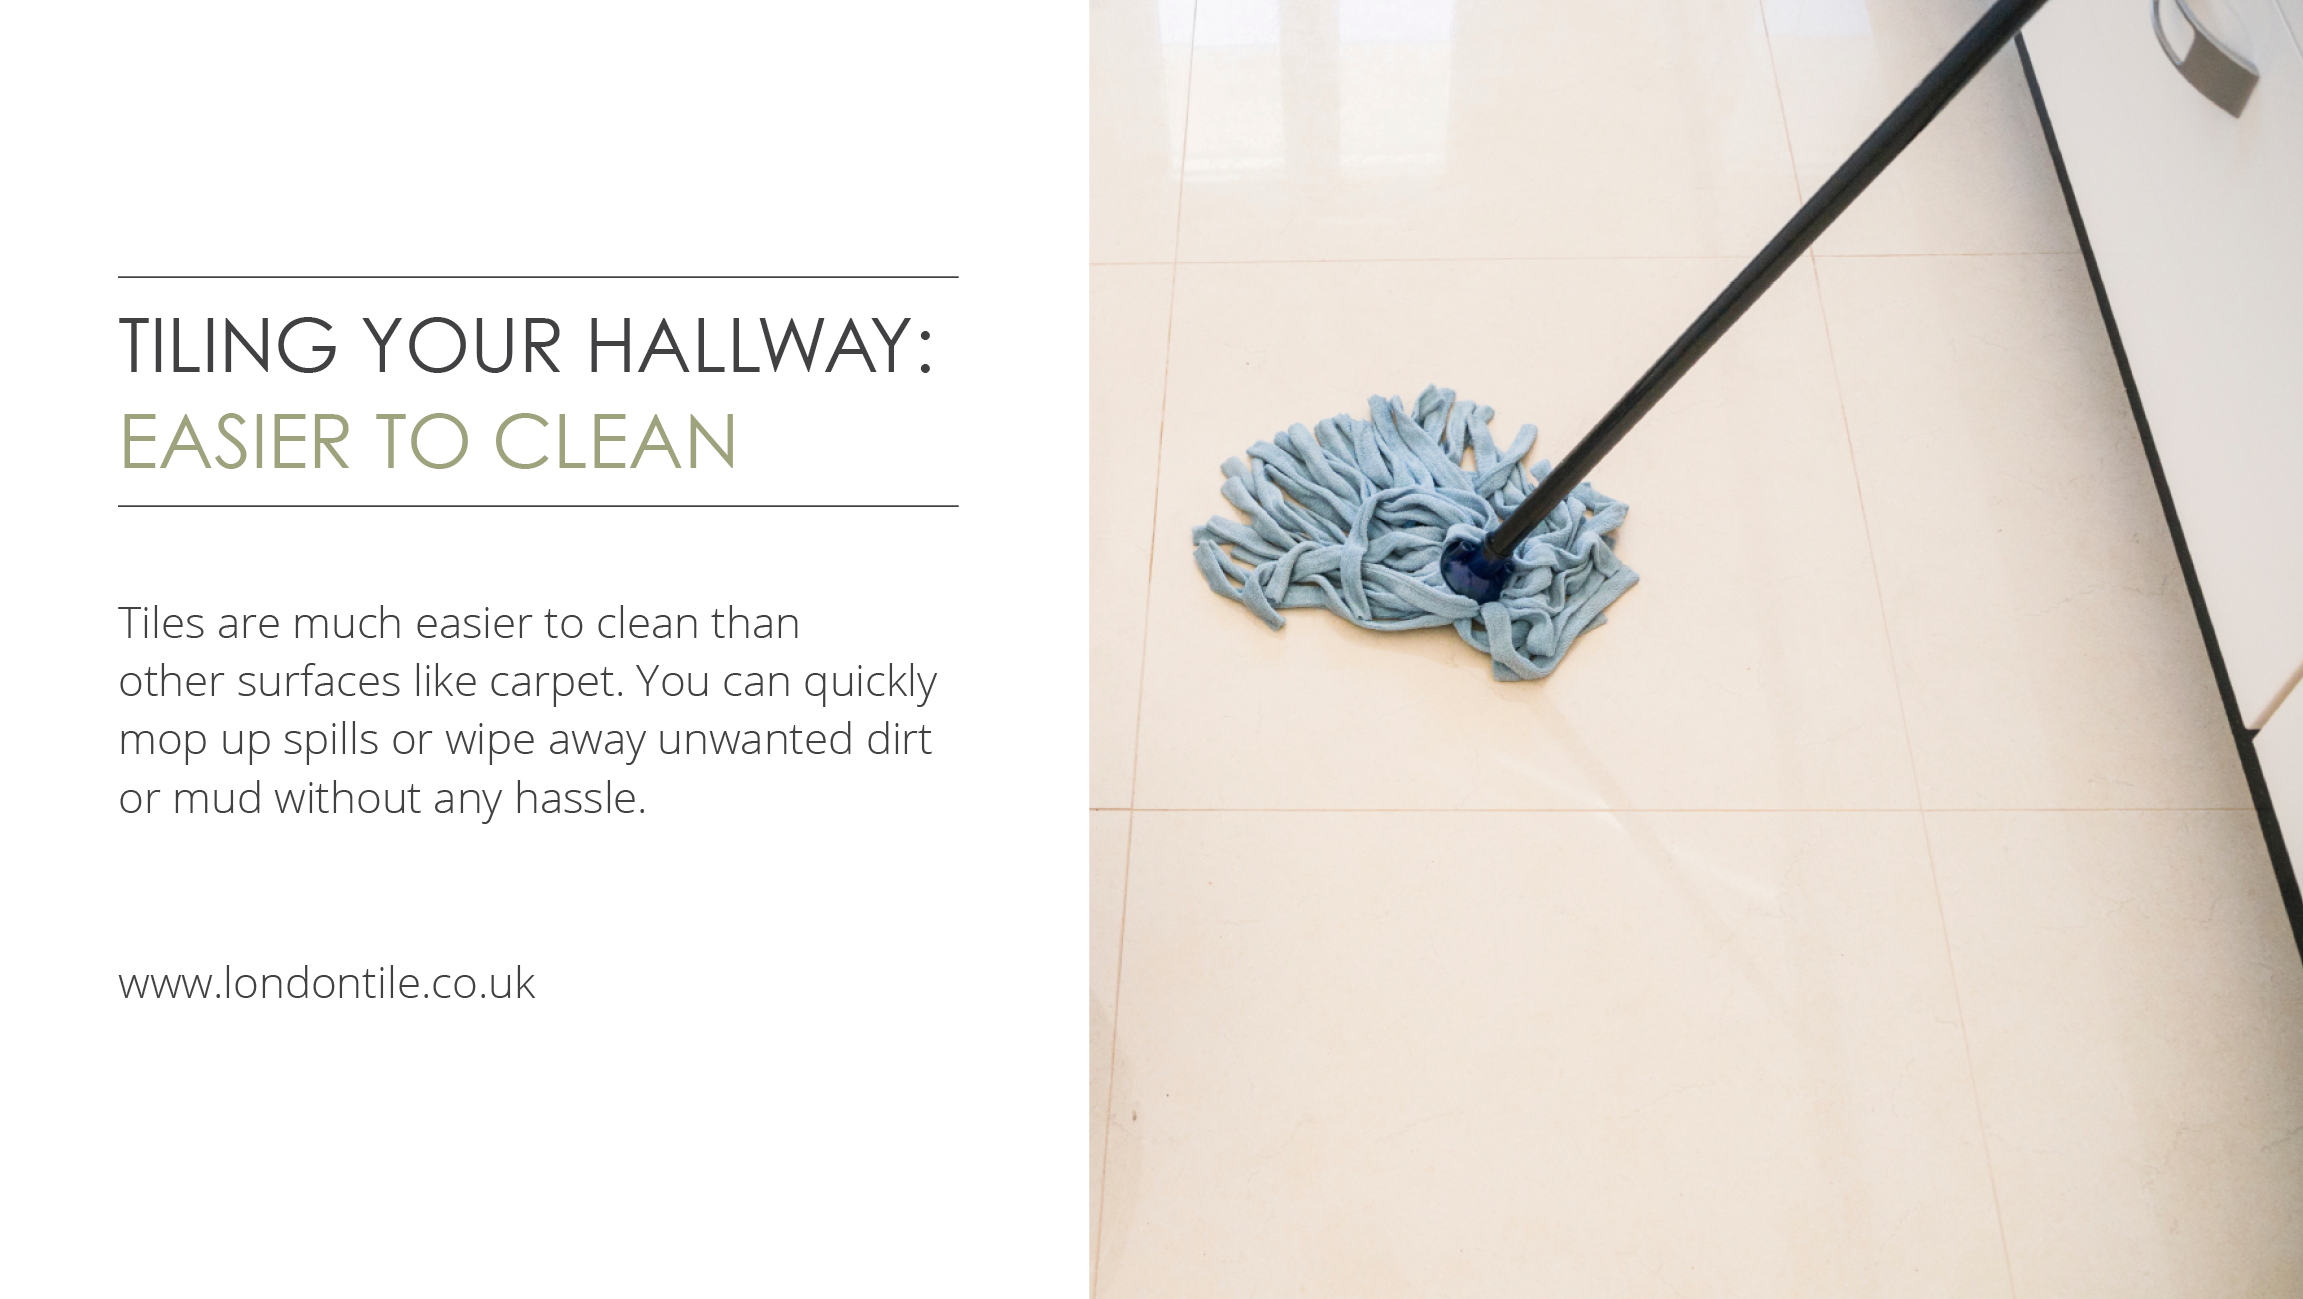 Tiling Your Hallway Makes The Floor Much Easier To Clean And They Maintain Their Appearance For Longer Than Carp Hallway Flooring Floor Tile Design Clean Tile